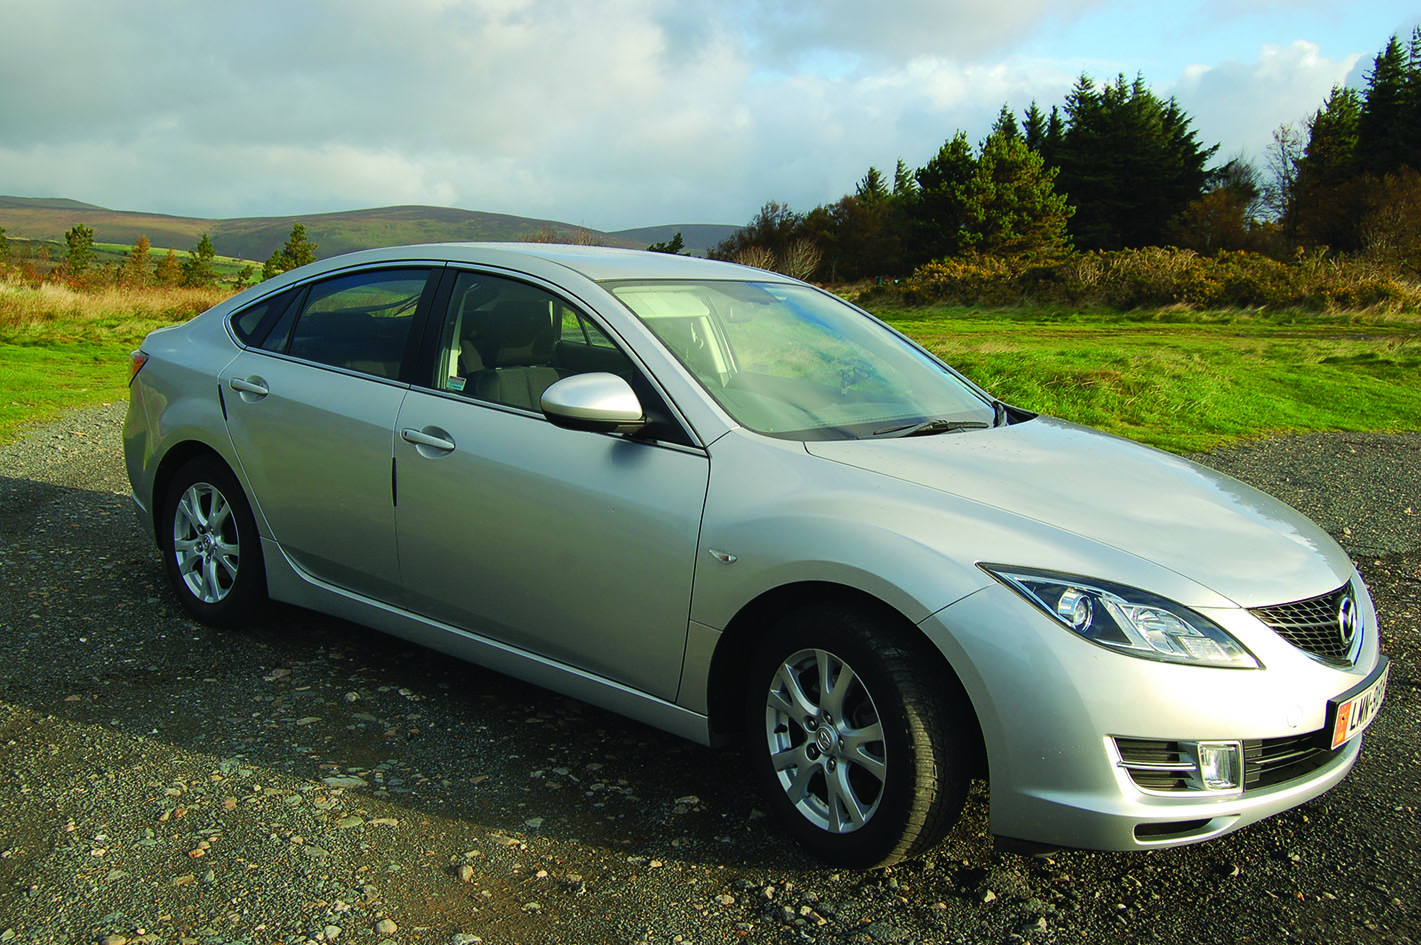 Mazda 6TS 2.0 from private